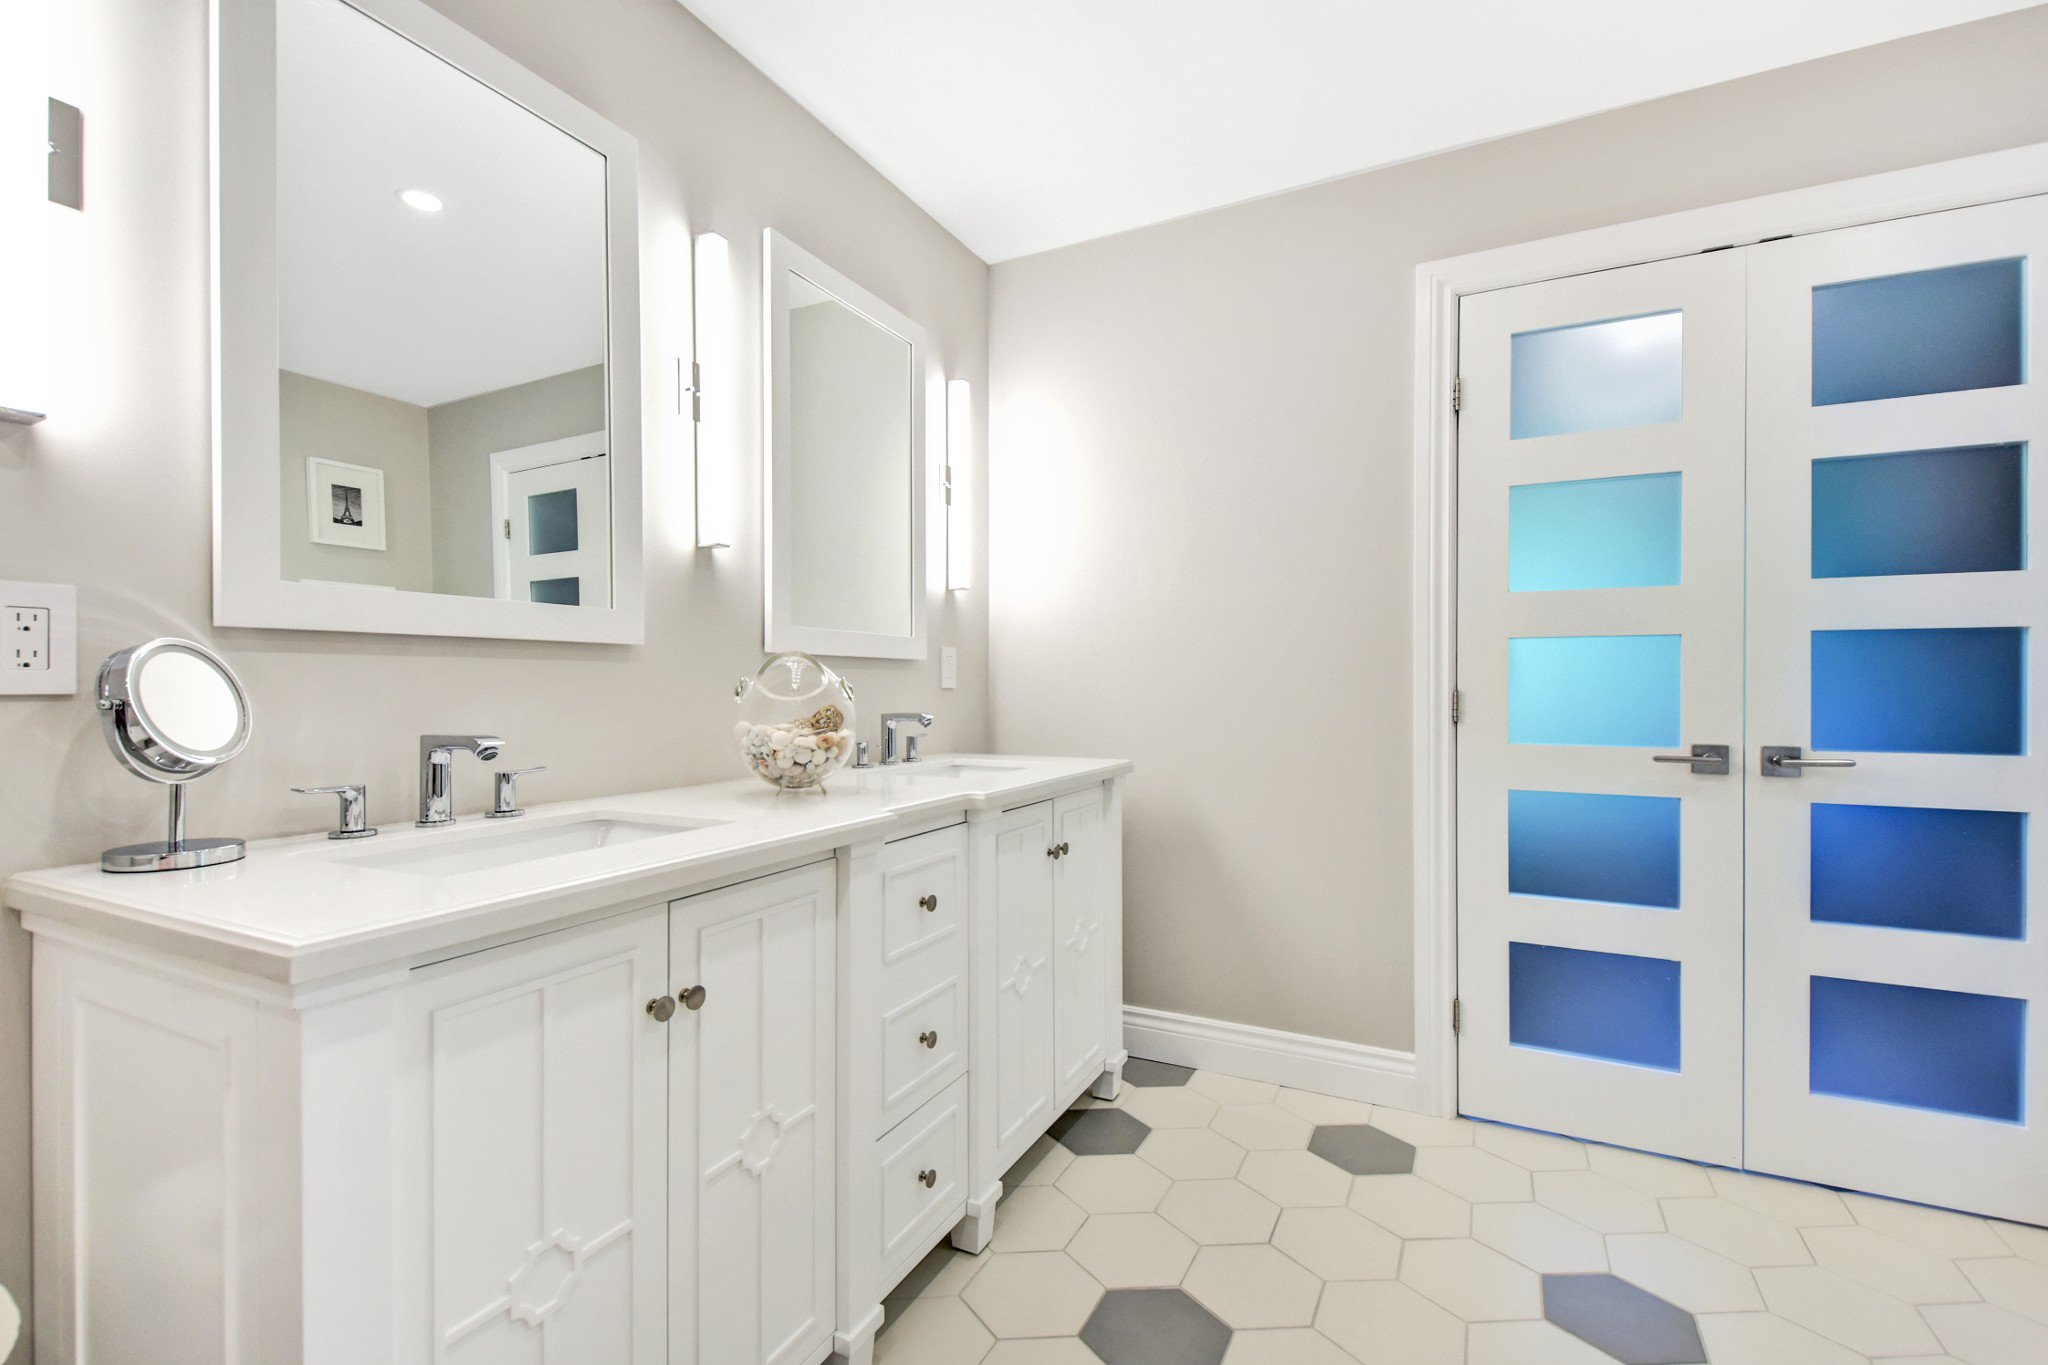 Photo 42: Photos: 1490 REINDEER WAY.: Greely House for sale (Ottawa)  : MLS®# 1109530